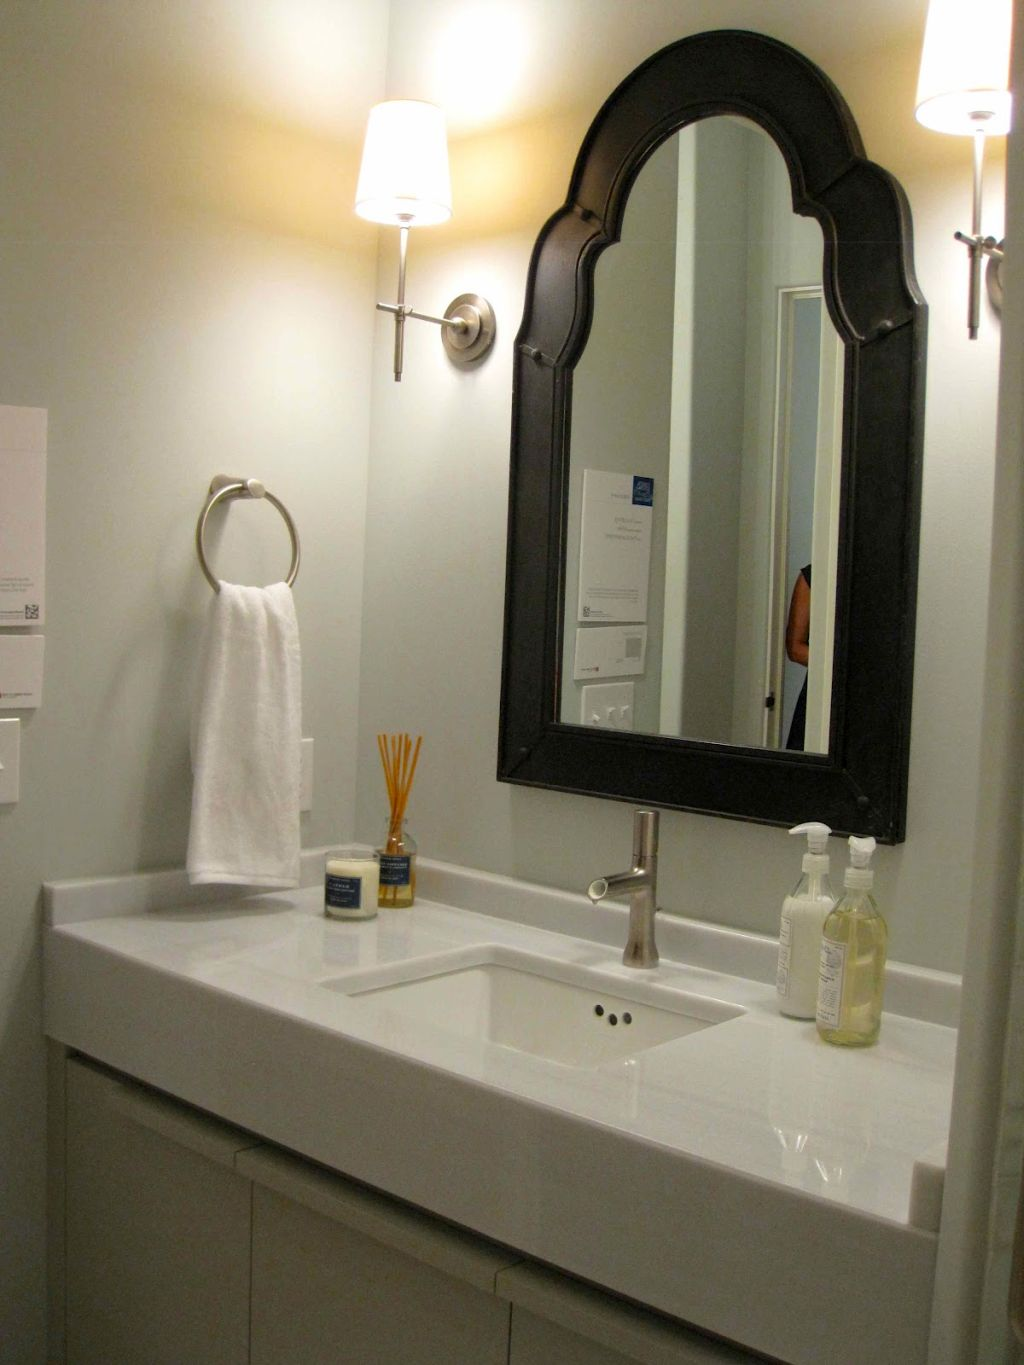 Bathroom Vanity Lighting Tips Ideas : simple Bathroom vanity lighting ideas for single sink